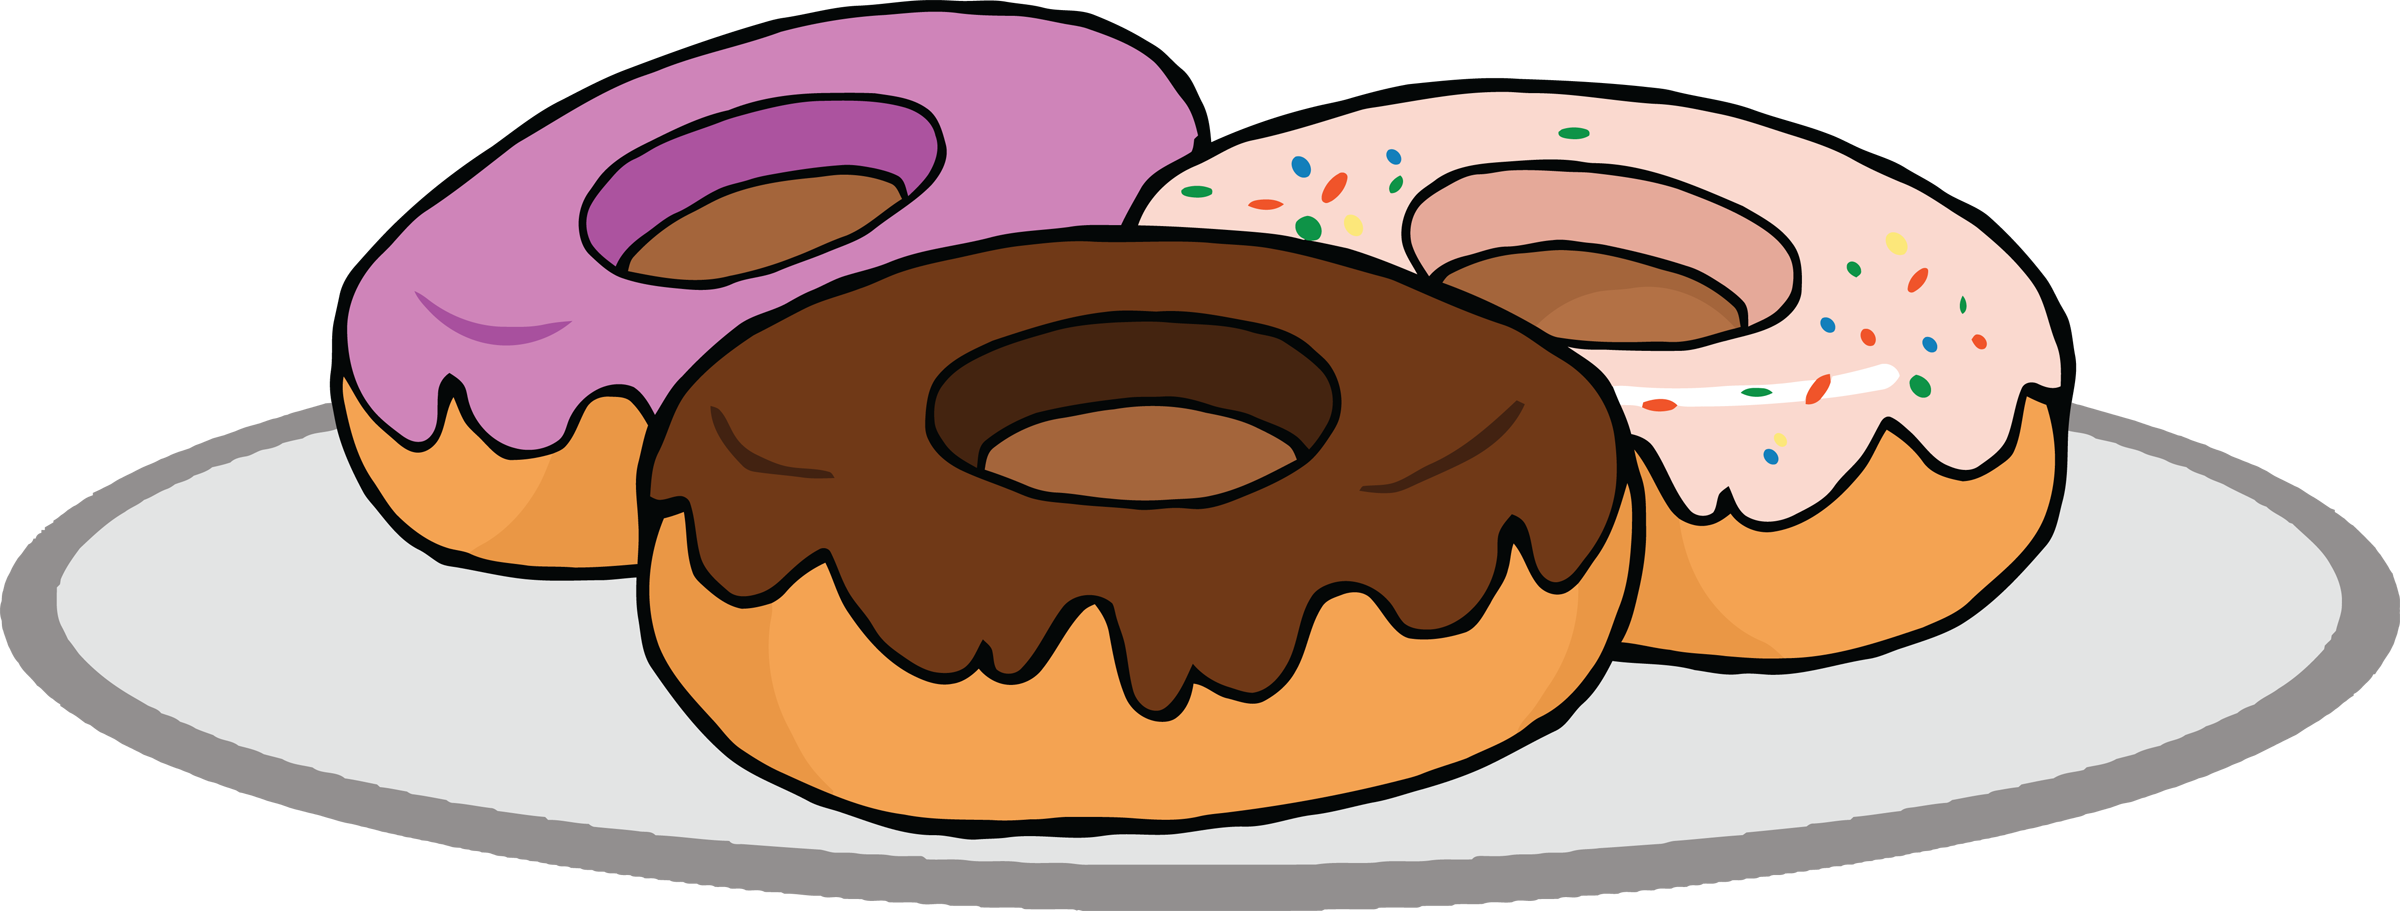 image black and white stock Donuts frames illustrations hd. Donut clipart